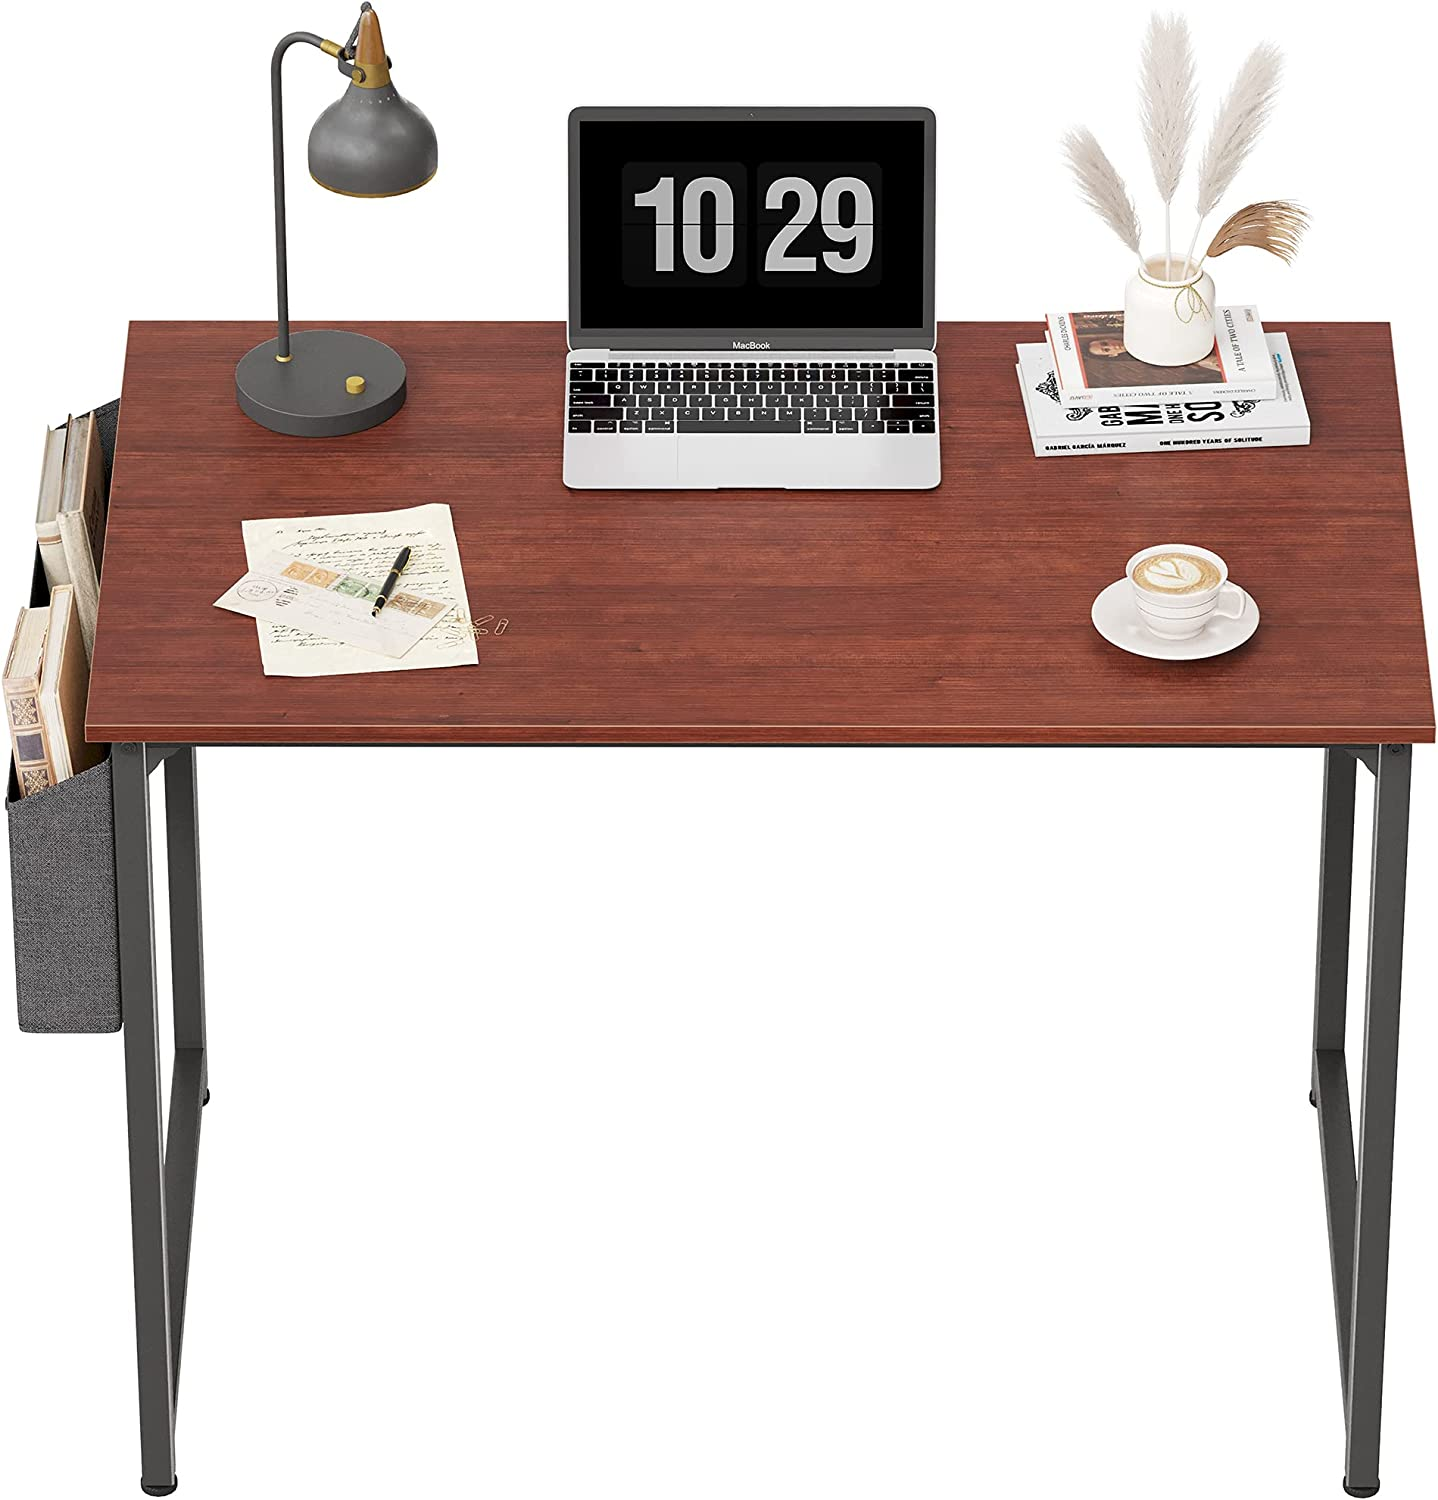 CubiCubi Computer Desk 40 Inch Study Writing Table for Home Office, Modern Simple Style PC Desk, Black Metal Frame, Red